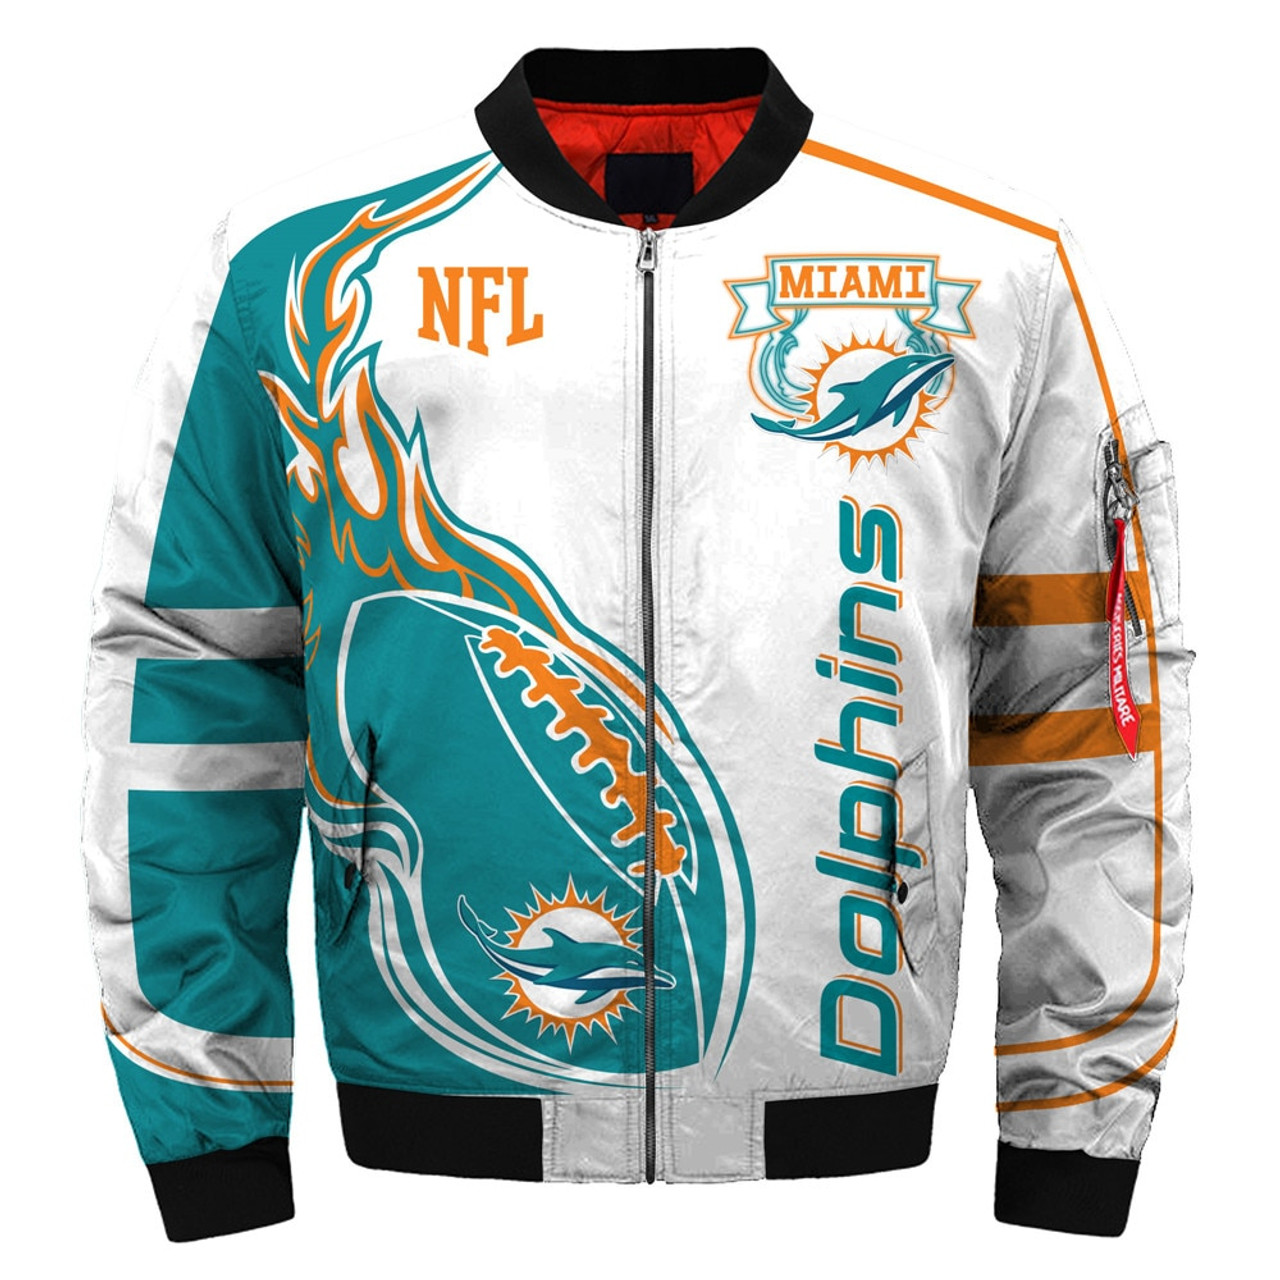 official photos 57063 397ad **(OFFICIALLY-LICENSED-N.F.L.MIAMI-DOLPHINS & OFFICIAL-DOLPHINS-TEAM-COLORS  & OFFICIAL-CLASSIC-DOLPHINS-LOGOS-BOMBER/FLIGHT-JACKET & ...